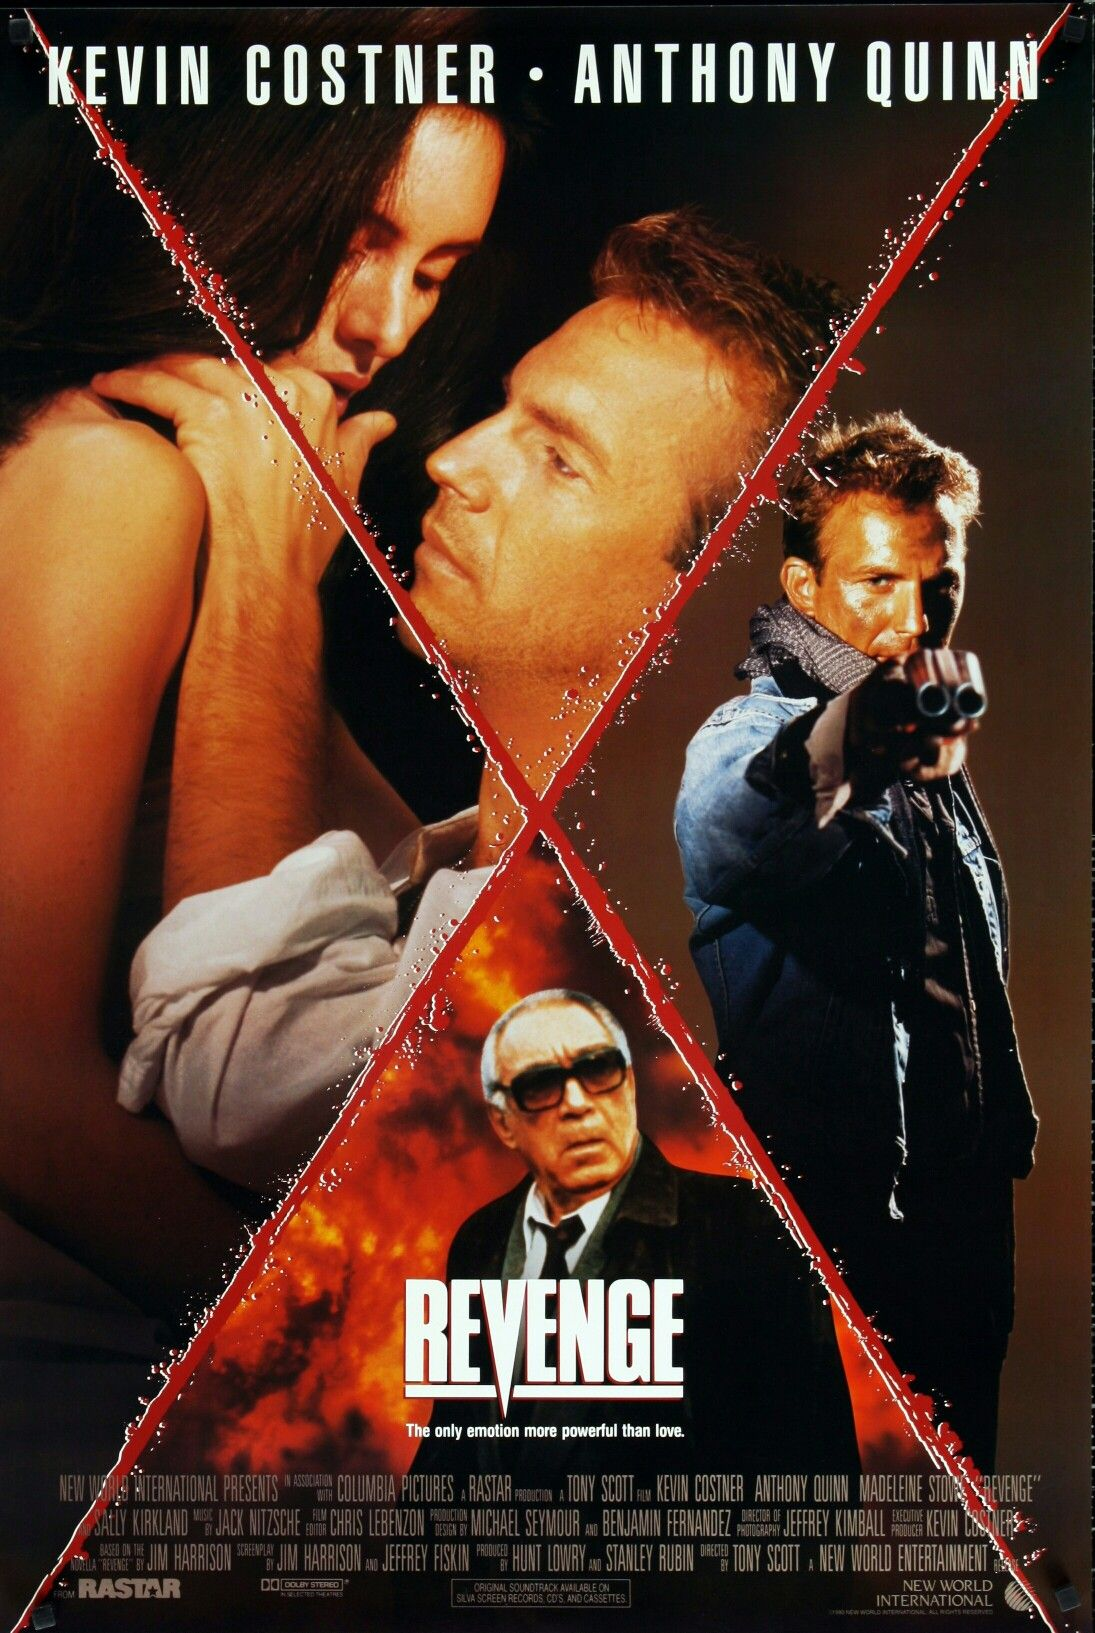 Revenge 1990. Kevin Costner, Madeleine Stowe and Anthony Quinn. Underrated.